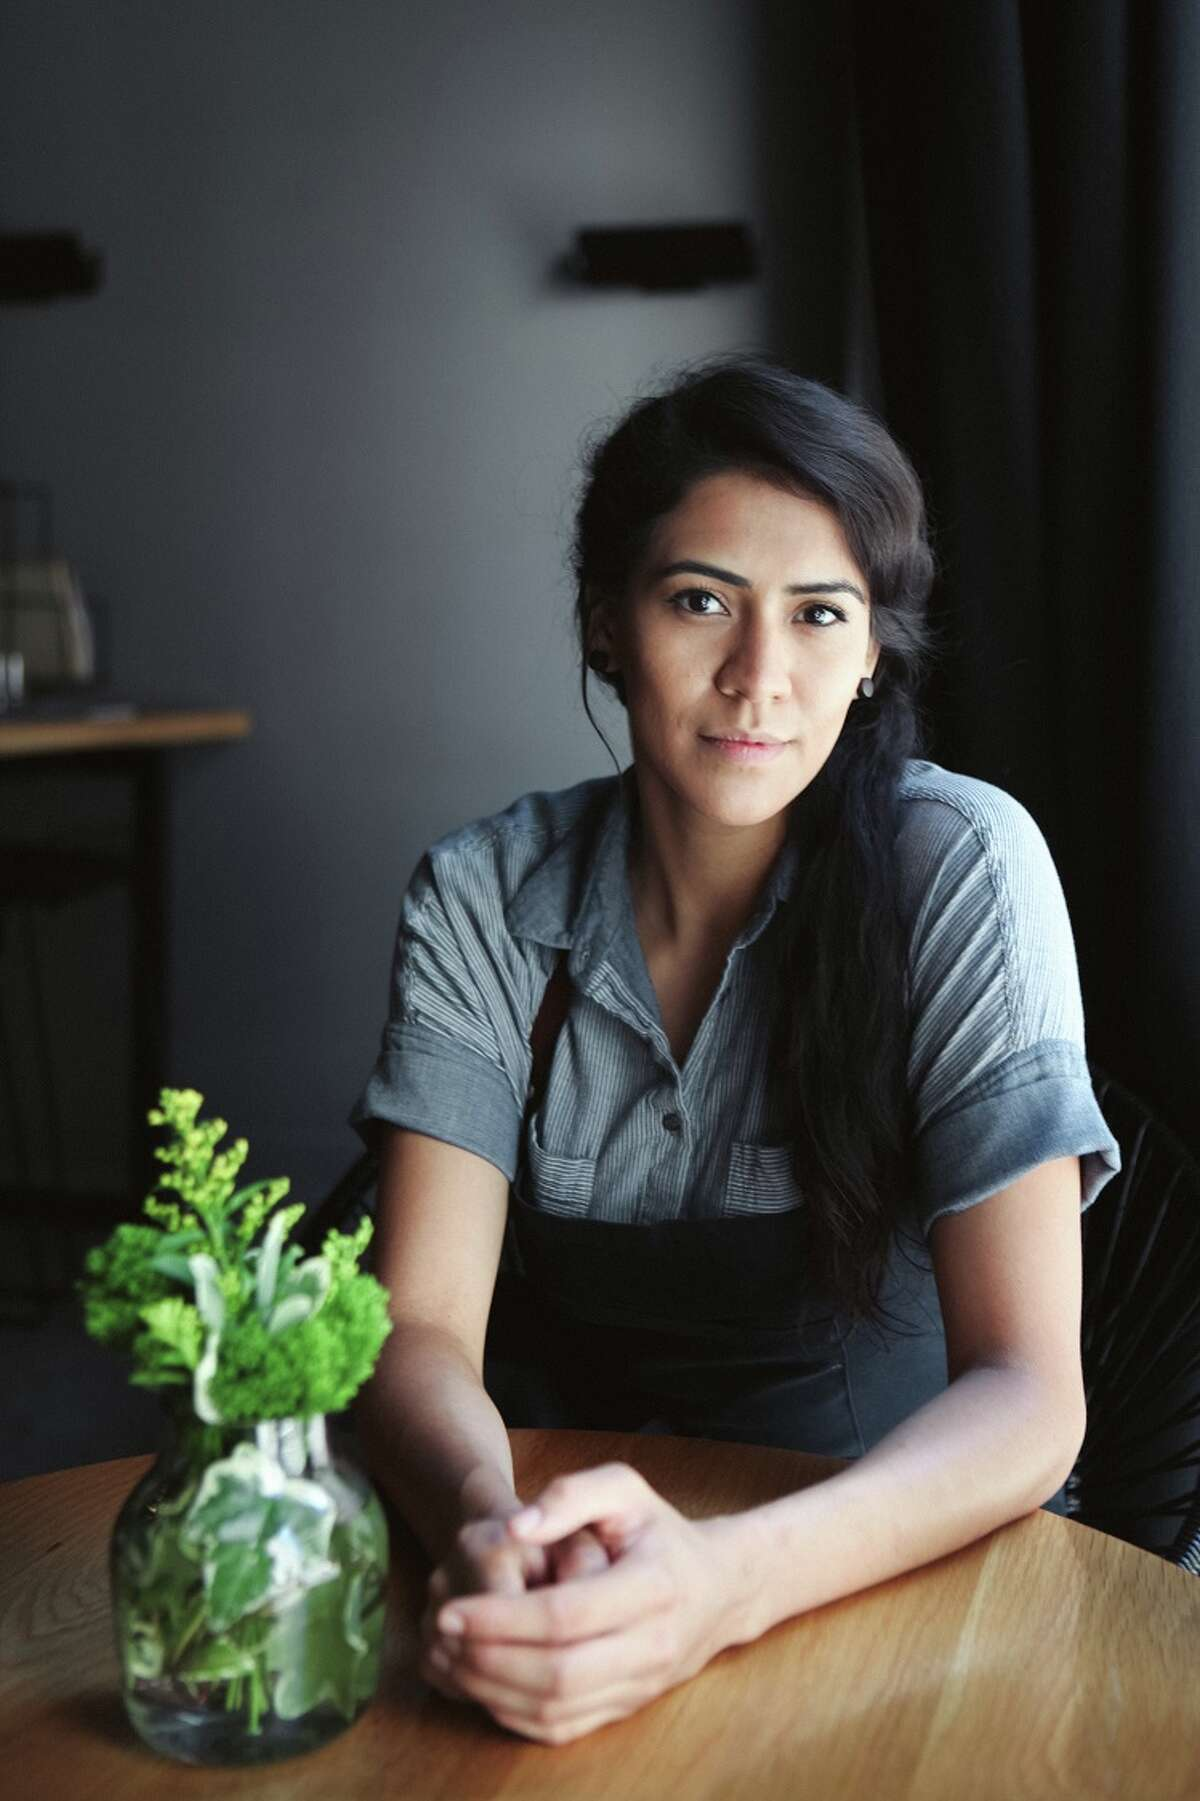 Enrique Olvera, chef/owner of the acclaimed Mexico City restaurant Pujol will join forces with Daniela Soto-Innes, chef de cuisine at his Cosme restaurant in New York, for a dinner on May 1 to benefit Big Brothers Big Sisters of Greater Houston.